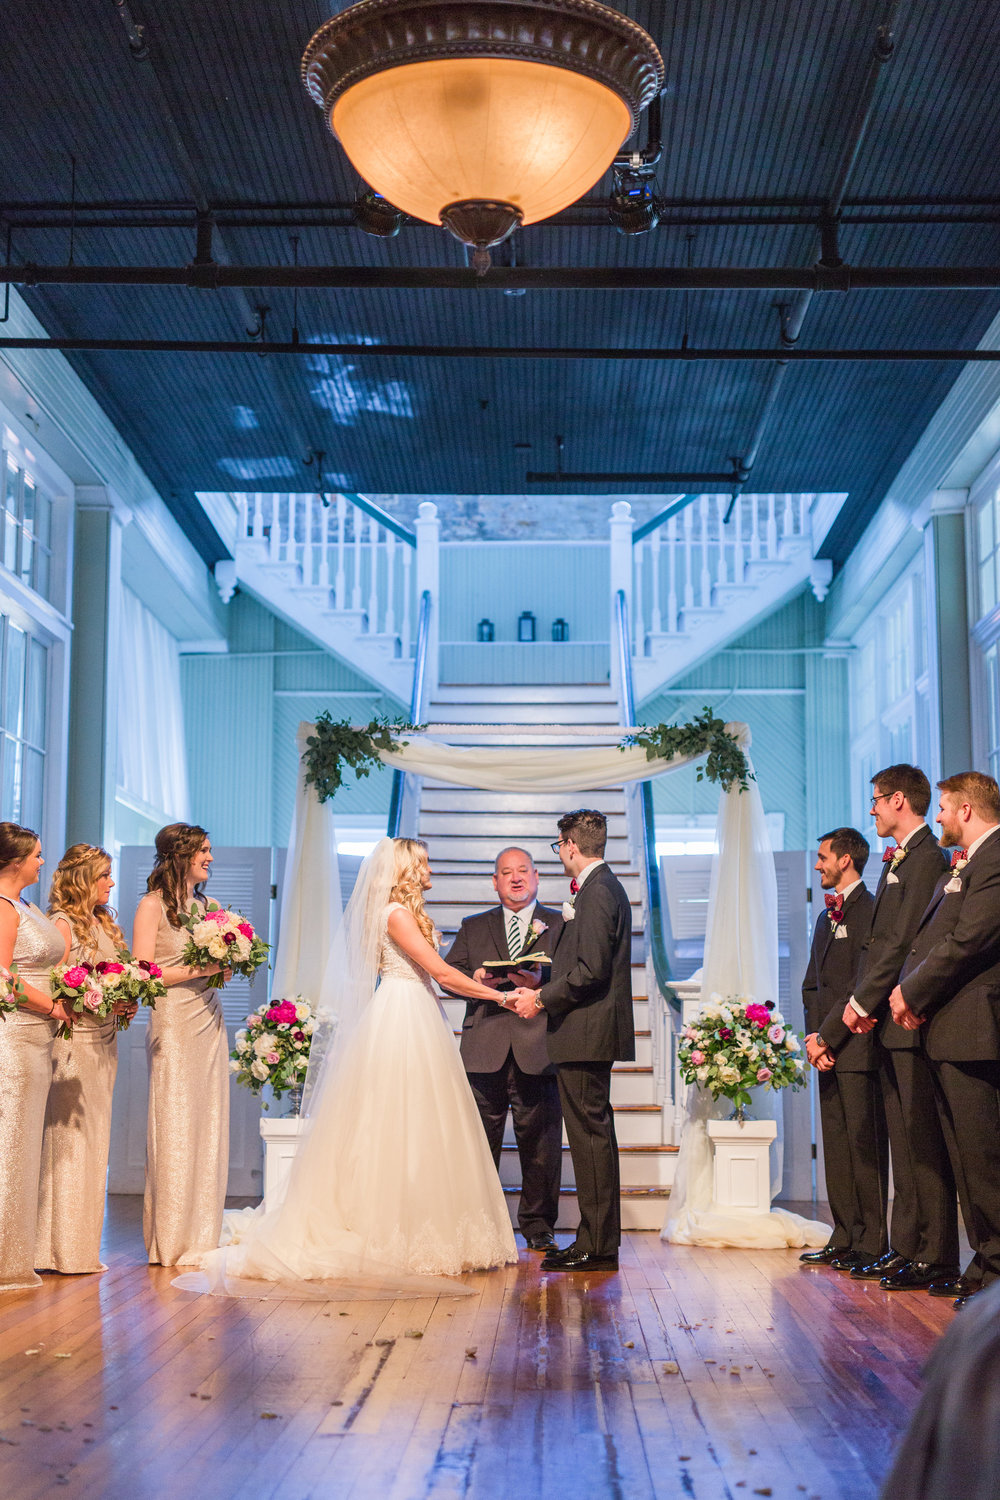 We incorporated the draping arch while insuring the florals matched the rest of the ceremony